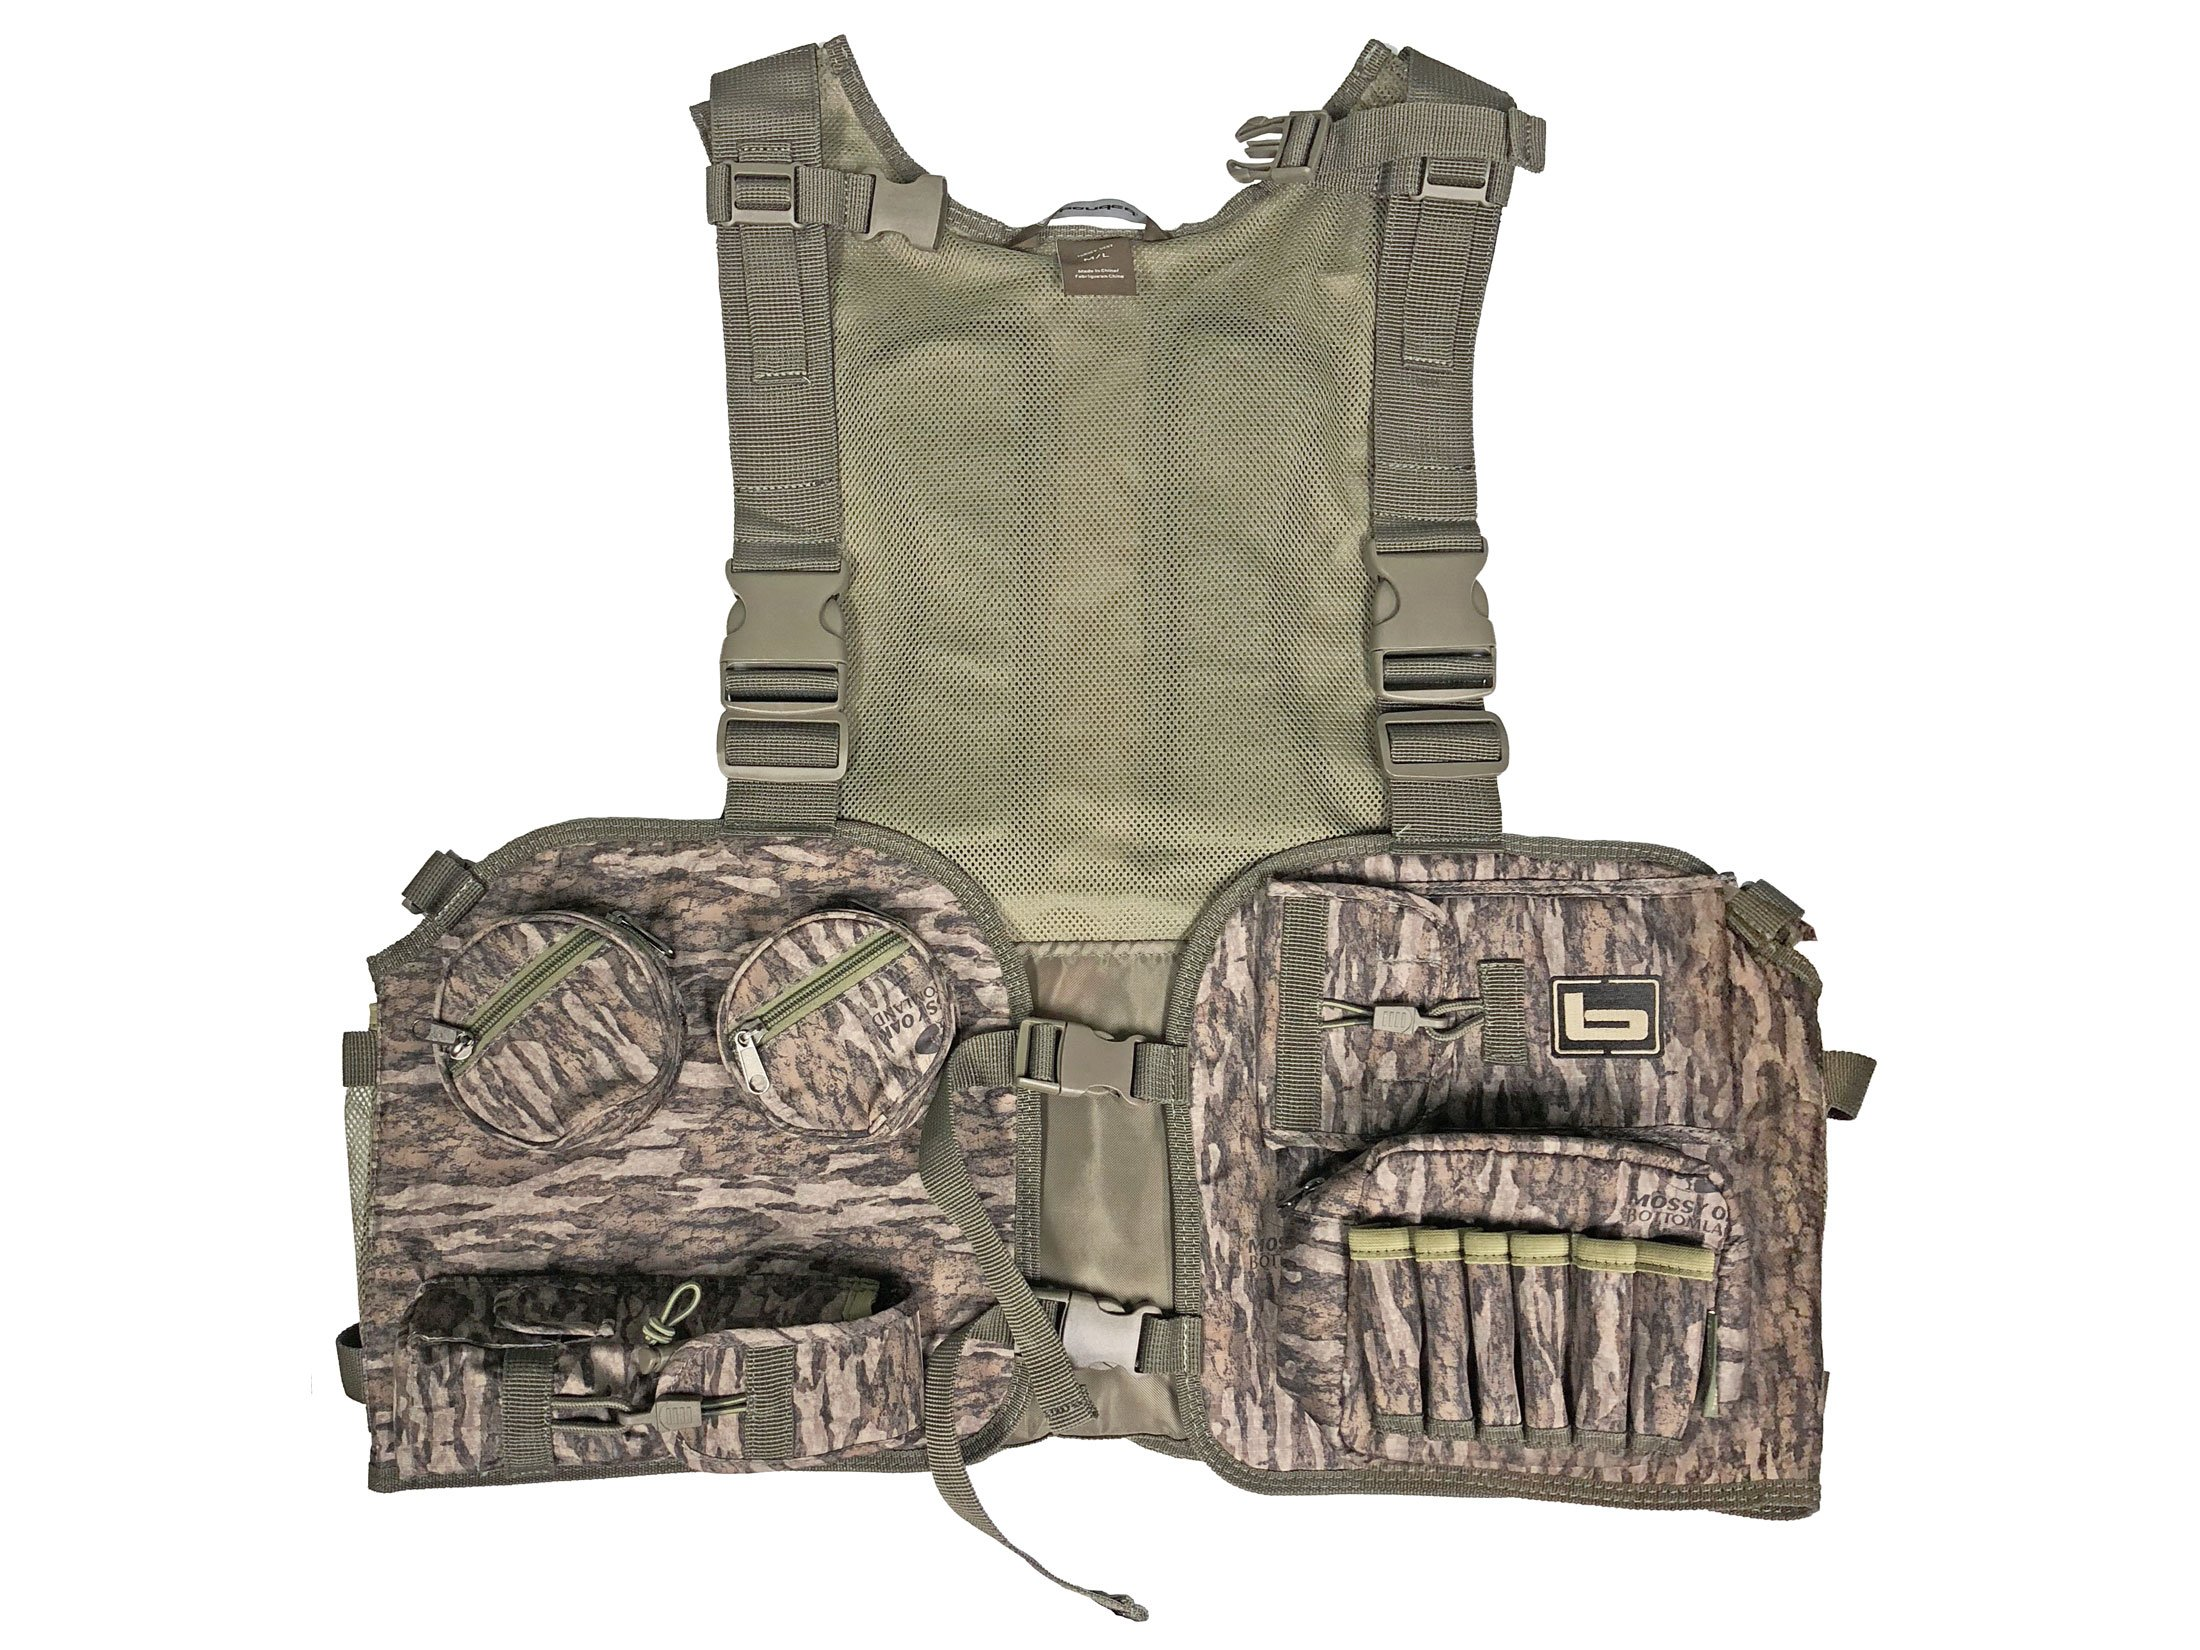 Banded Mossy Oak Bottomland Turkey Vest XL/2XL B1150002-OBL-X2X by Banded Outdoors (Image #1)